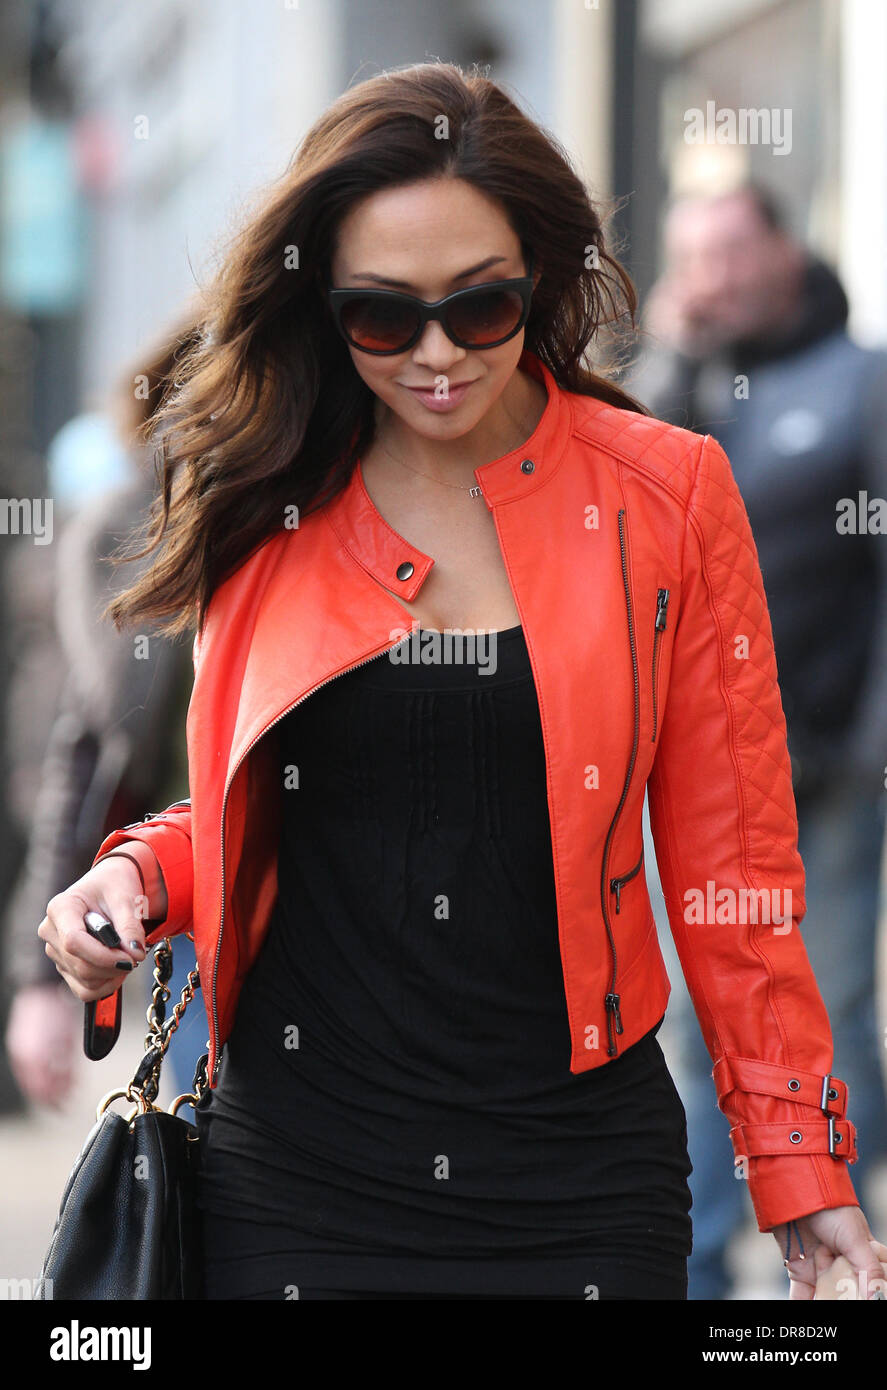 London, UK, 21st January 2014. Myleene Klass, English singer, pianist, media personality and model, seen out and about in London - Stock Image